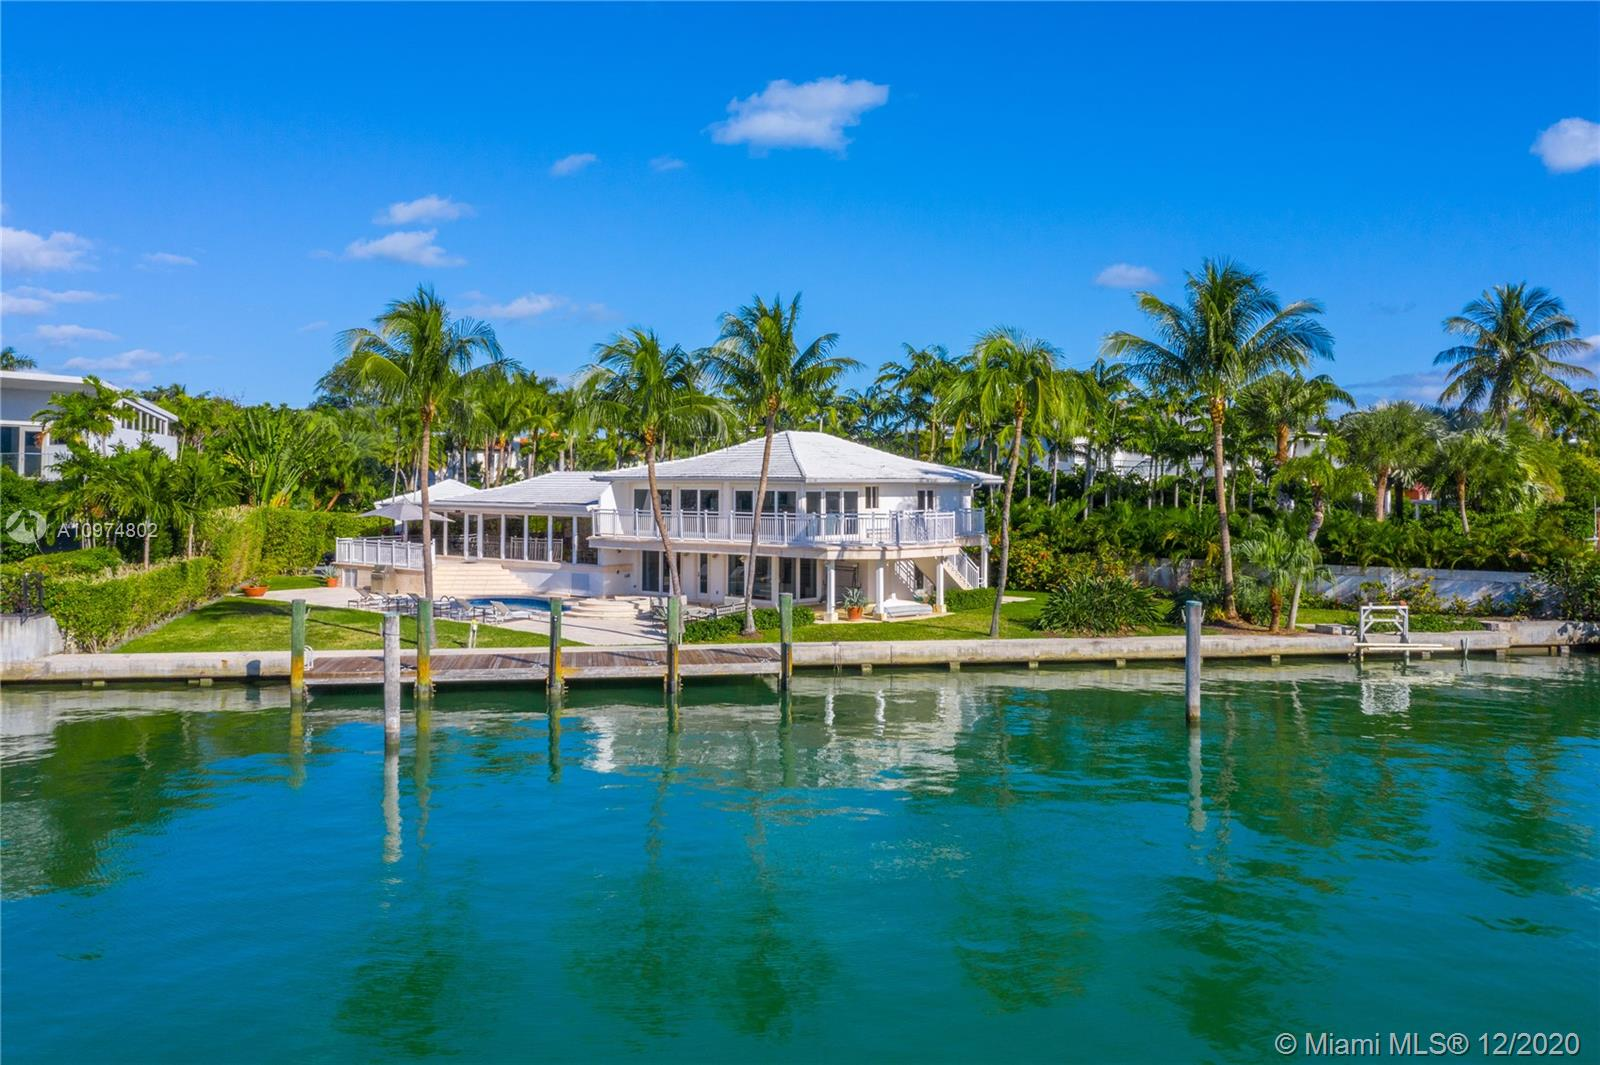 A true boater's paradise with 165 feet on the water on gorgeous Hurricane Harbor.  A Florida waterfront home with fantastic and gorgeous open views, stunning sunsets and southern exposure which makes this residence very bright and light.  Charming, remodeled and updated, perfect for a family to enjoy offering 6 bedrooms, 6.5 baths, spacious living-dining room area, great kitchen, a splendid pool and patio area, wonderful terraces throughout and plenty of parking area.  Enjoy island living at its best …in this private and gated hideaway.